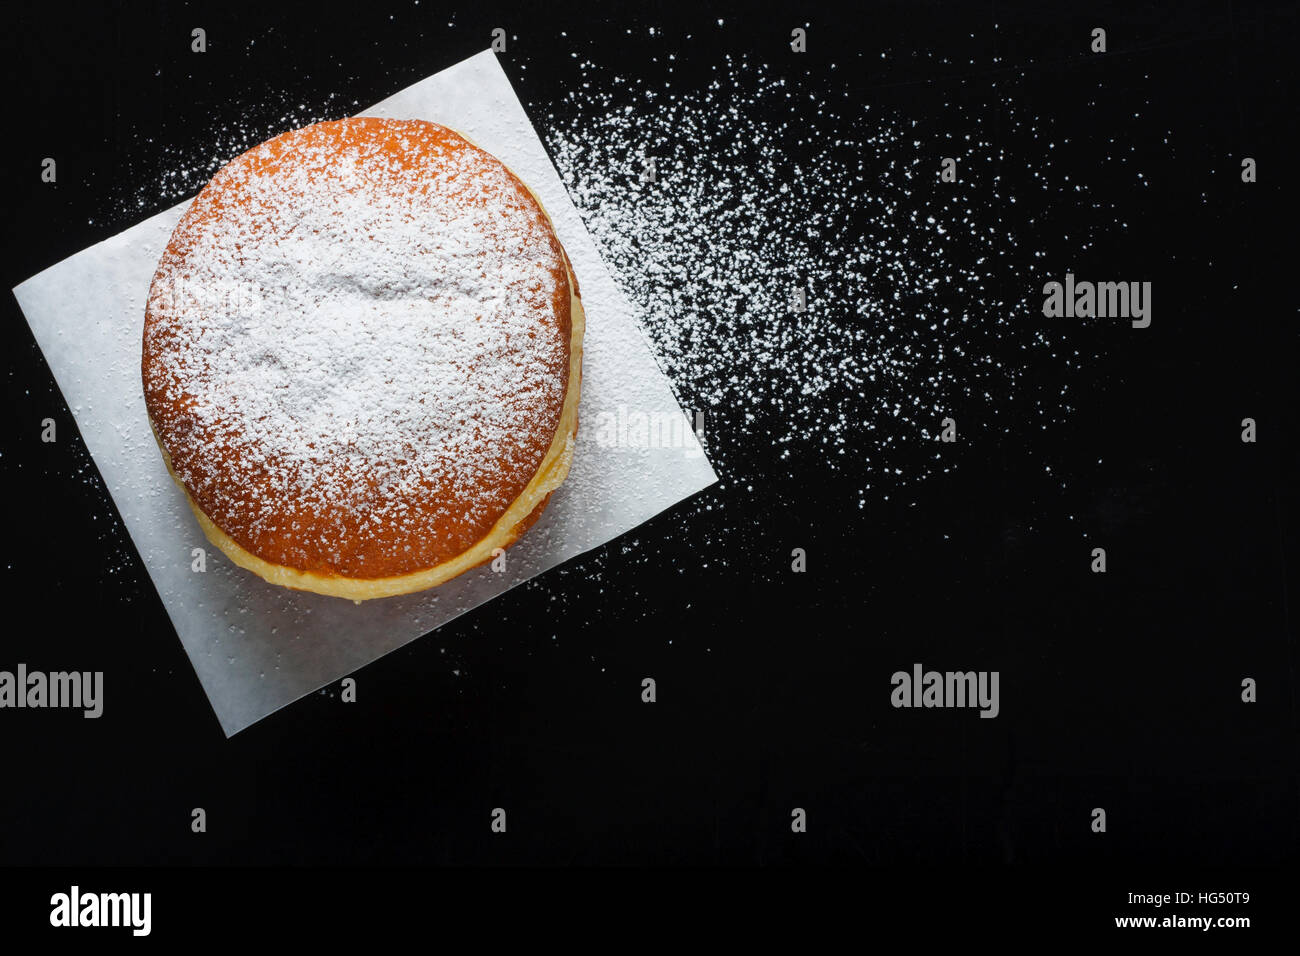 Donut and powdered sugar on dark background - Stock Image